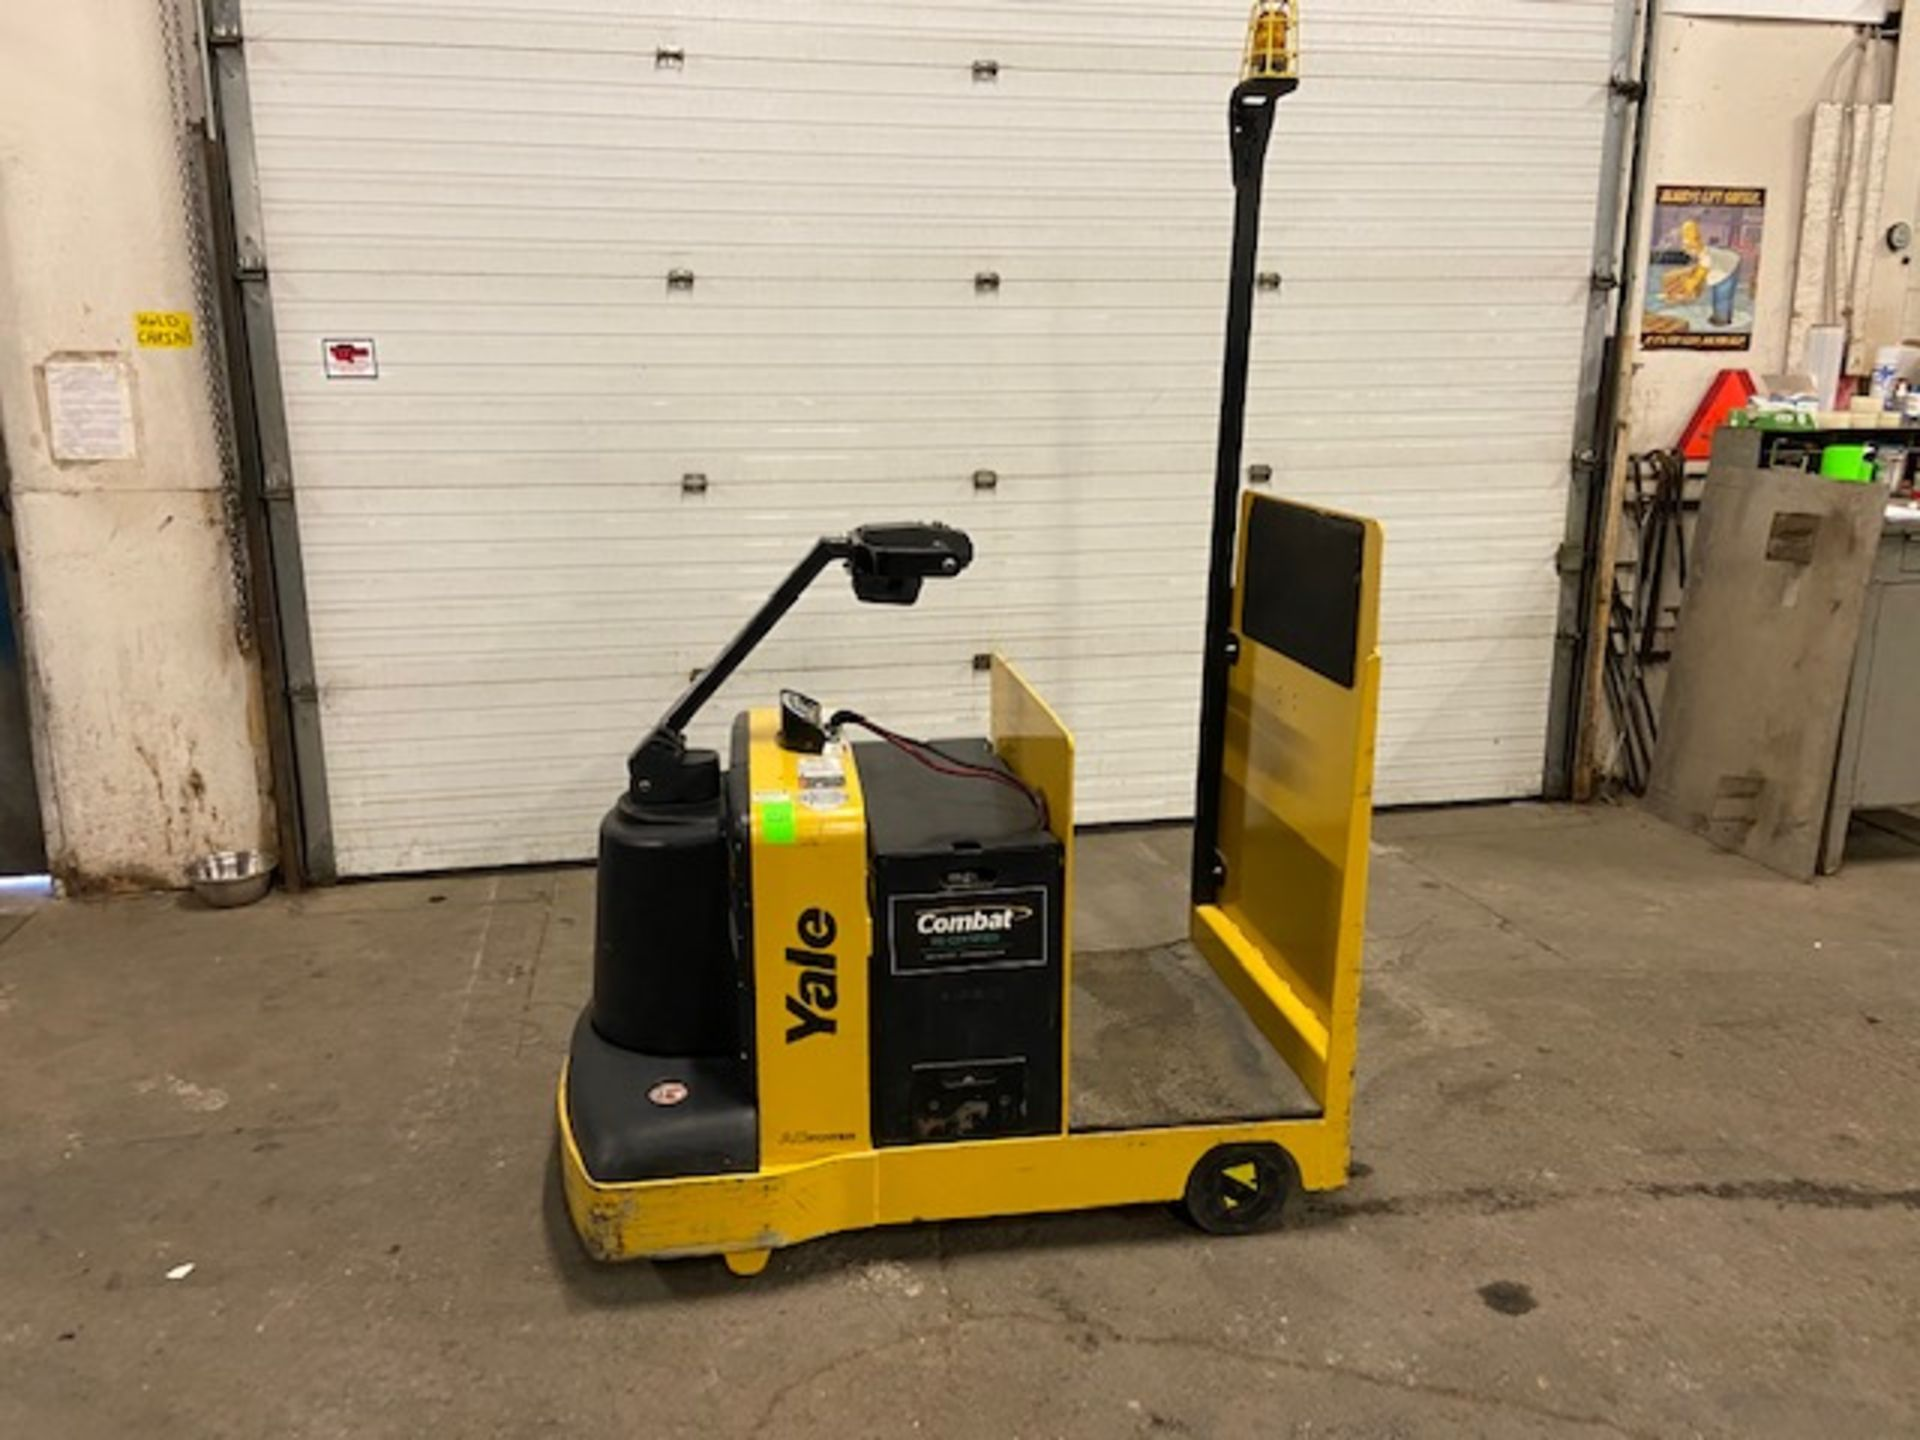 2016 Yale Ride On Tow Tractor - Tugger / Personal Carrier Electric 24V